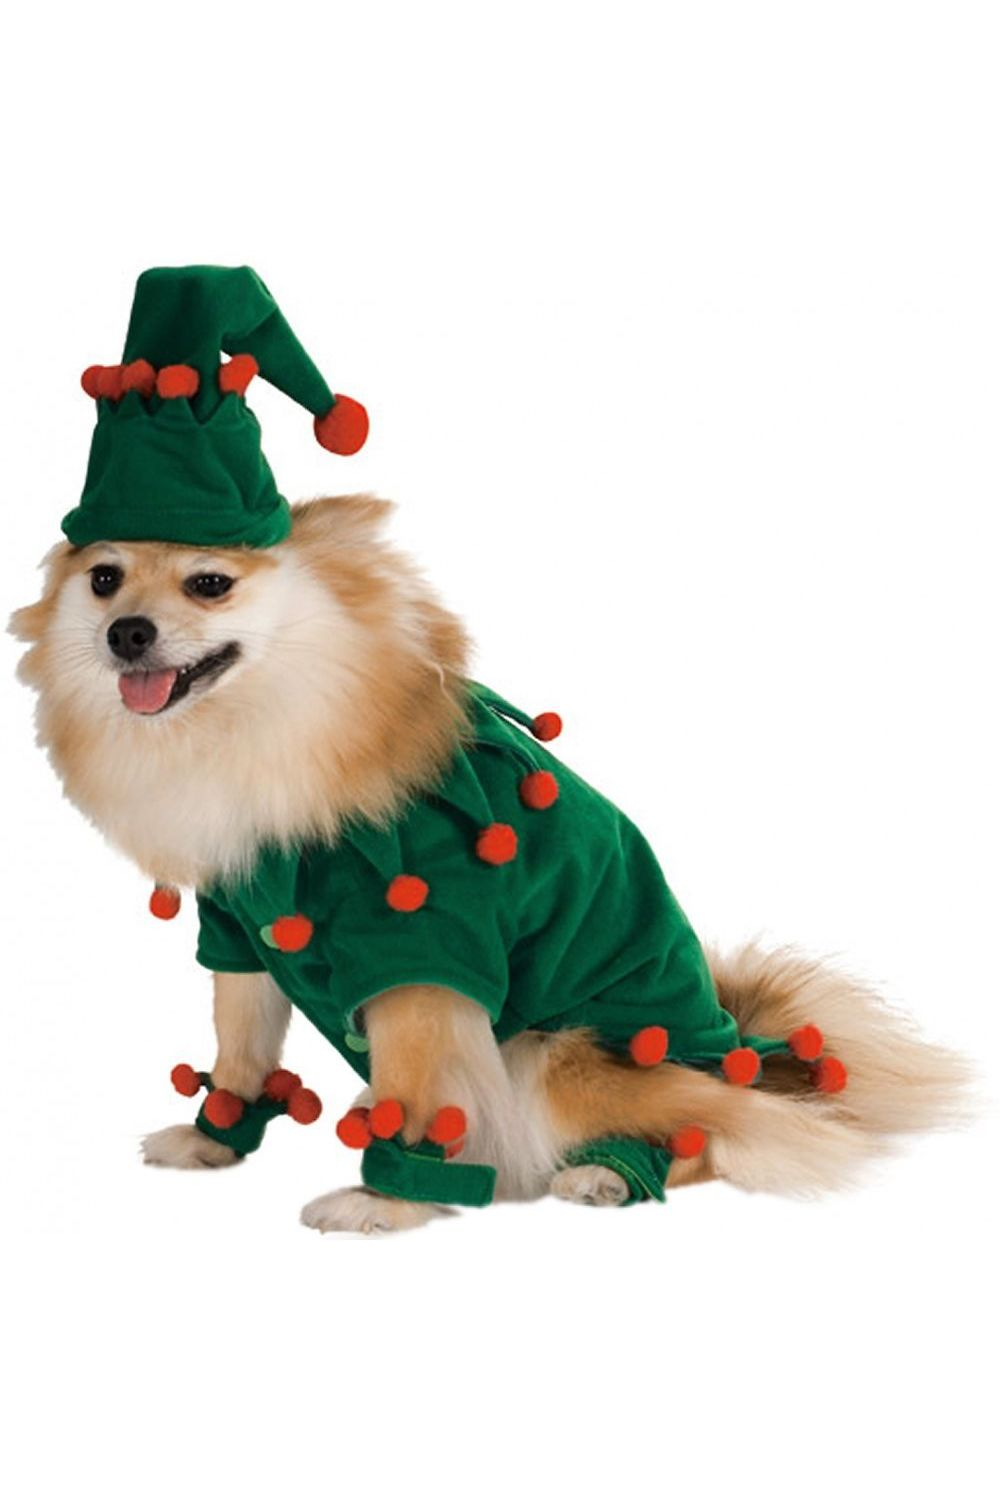 37 Best Dog and Cat Halloween Costumes 2018 - Cute Pet Costume Ideas